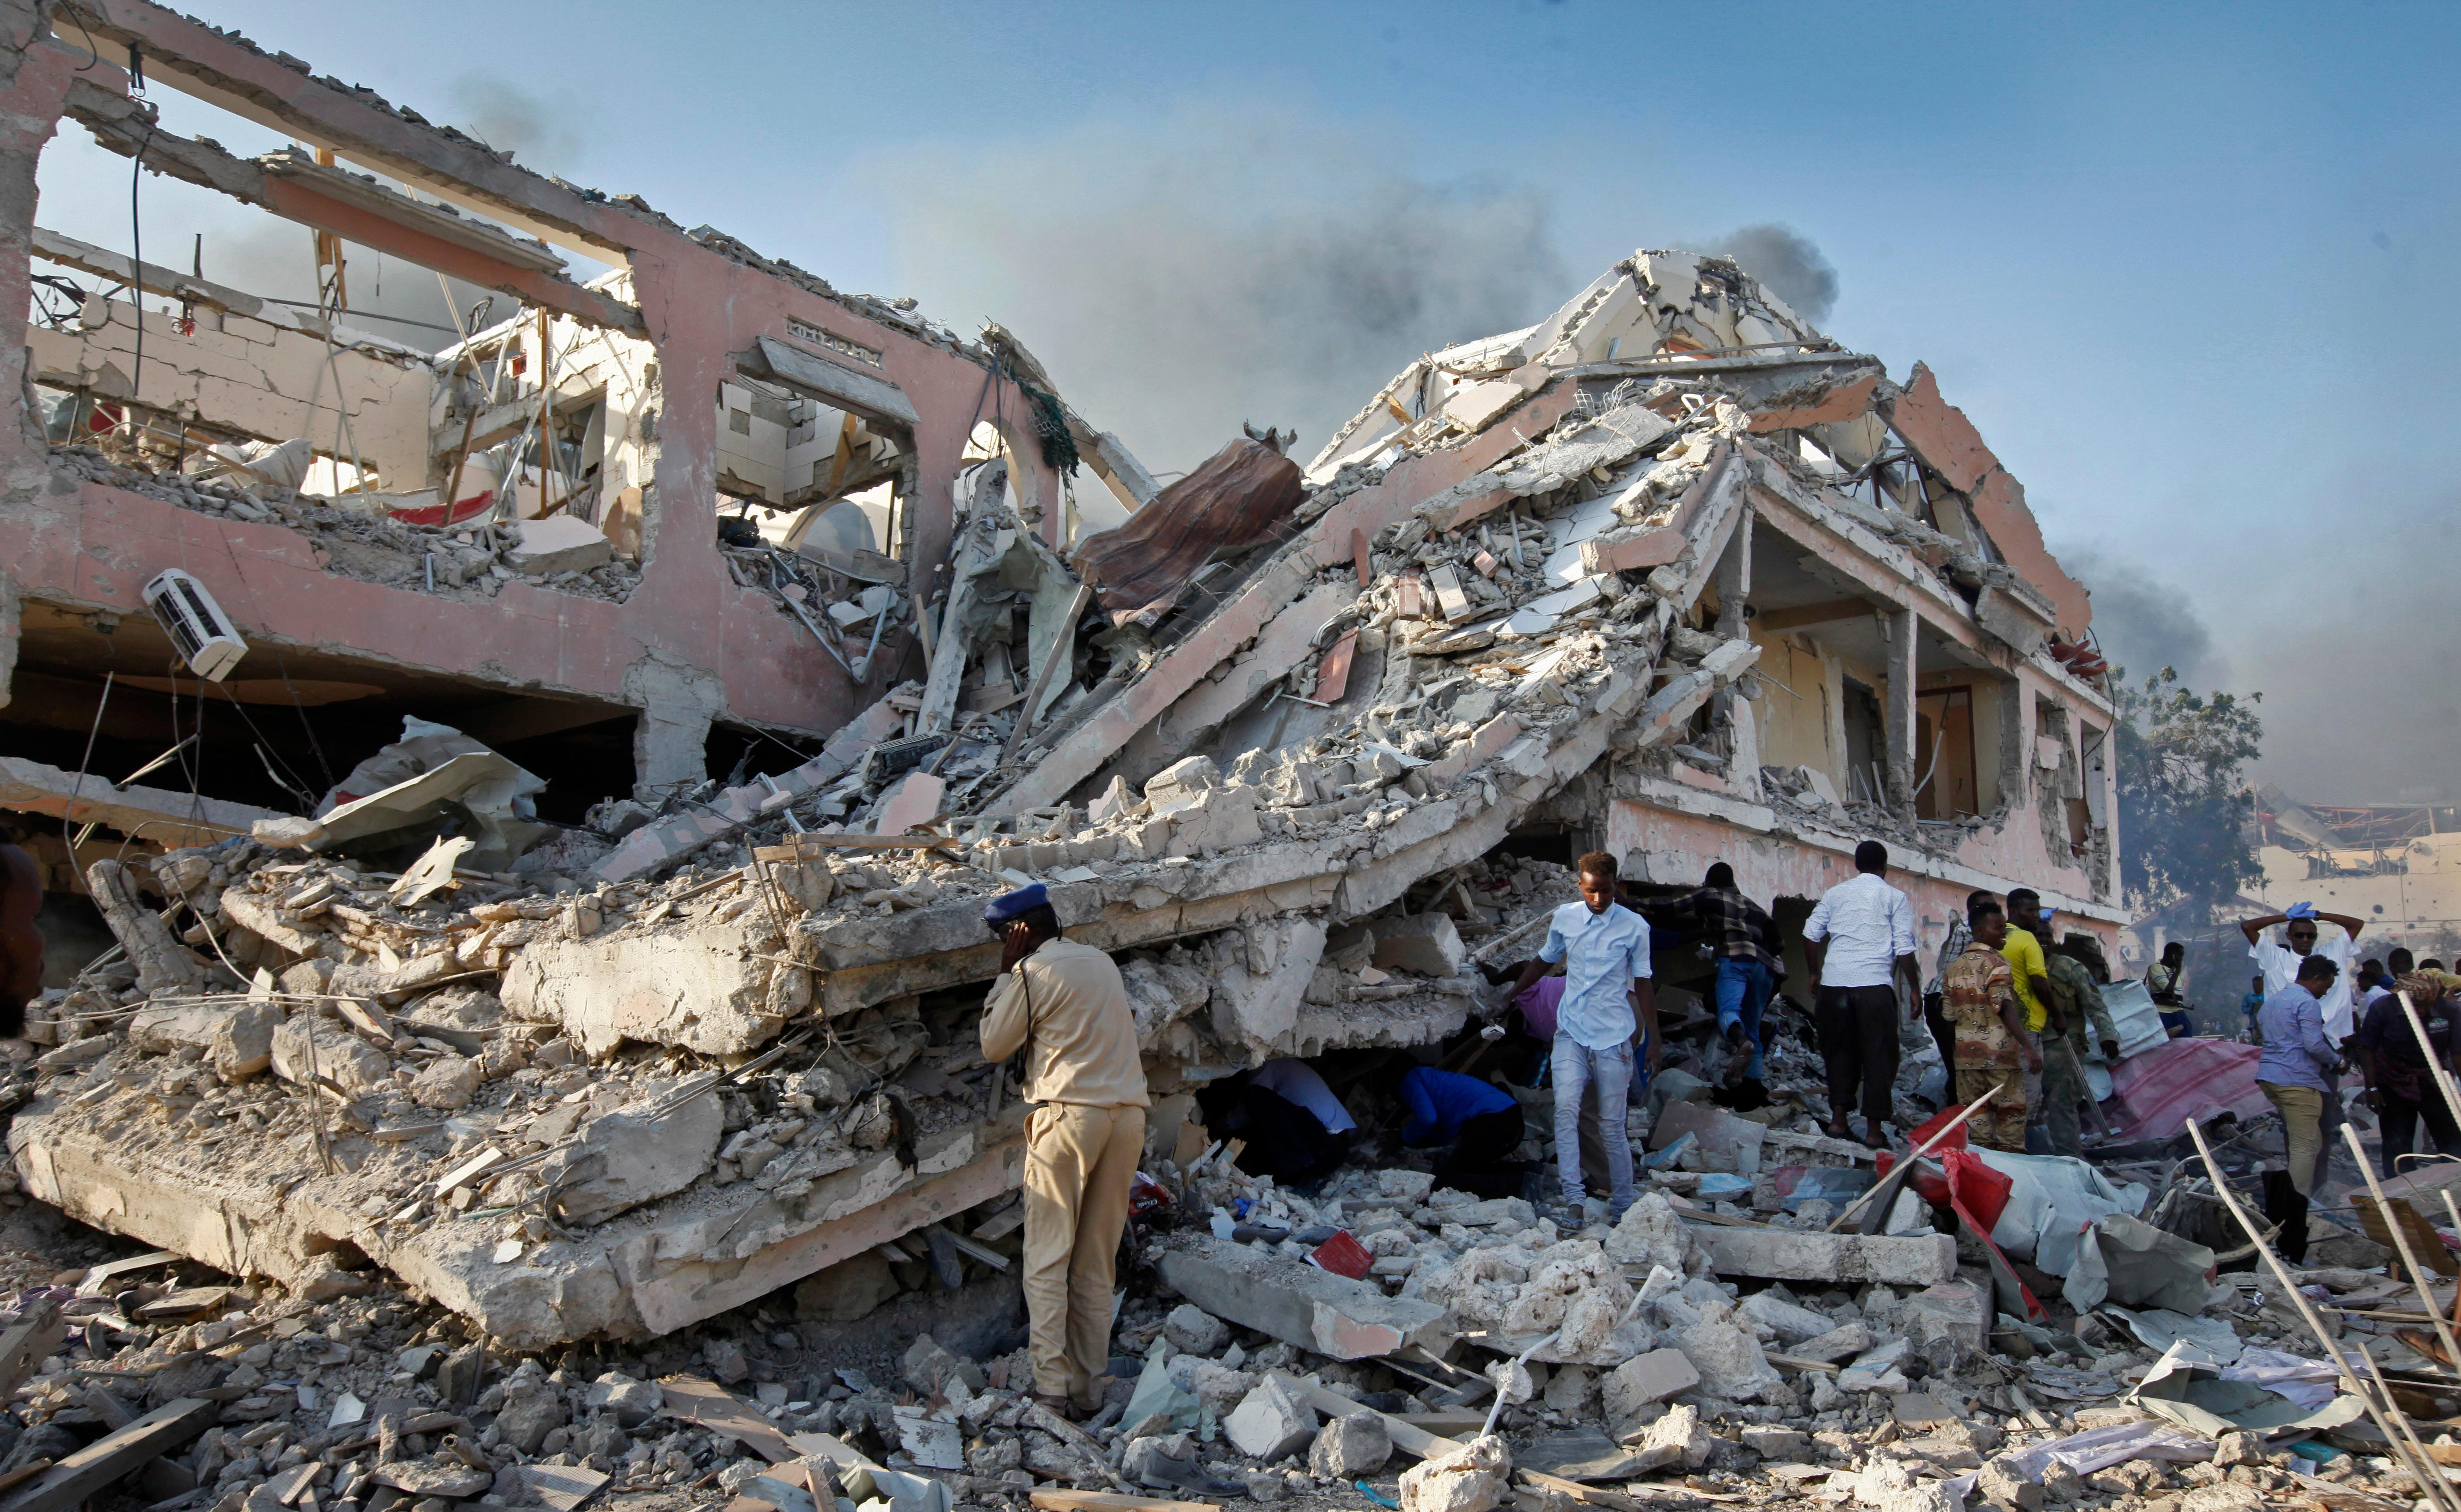 Somalis gather and search for survivors by destroyed buildings at the scene of a blast in the capital Mogadishu, Somalia Saturday, Oct. 14, 2017. A huge explosion from a truck bomb has killed at least 20 people in Somalia's capital, police said Saturday, as shaken residents called it the most powerful blast they'd heard in years. (AP Photo/Farah Abdi Warsameh)